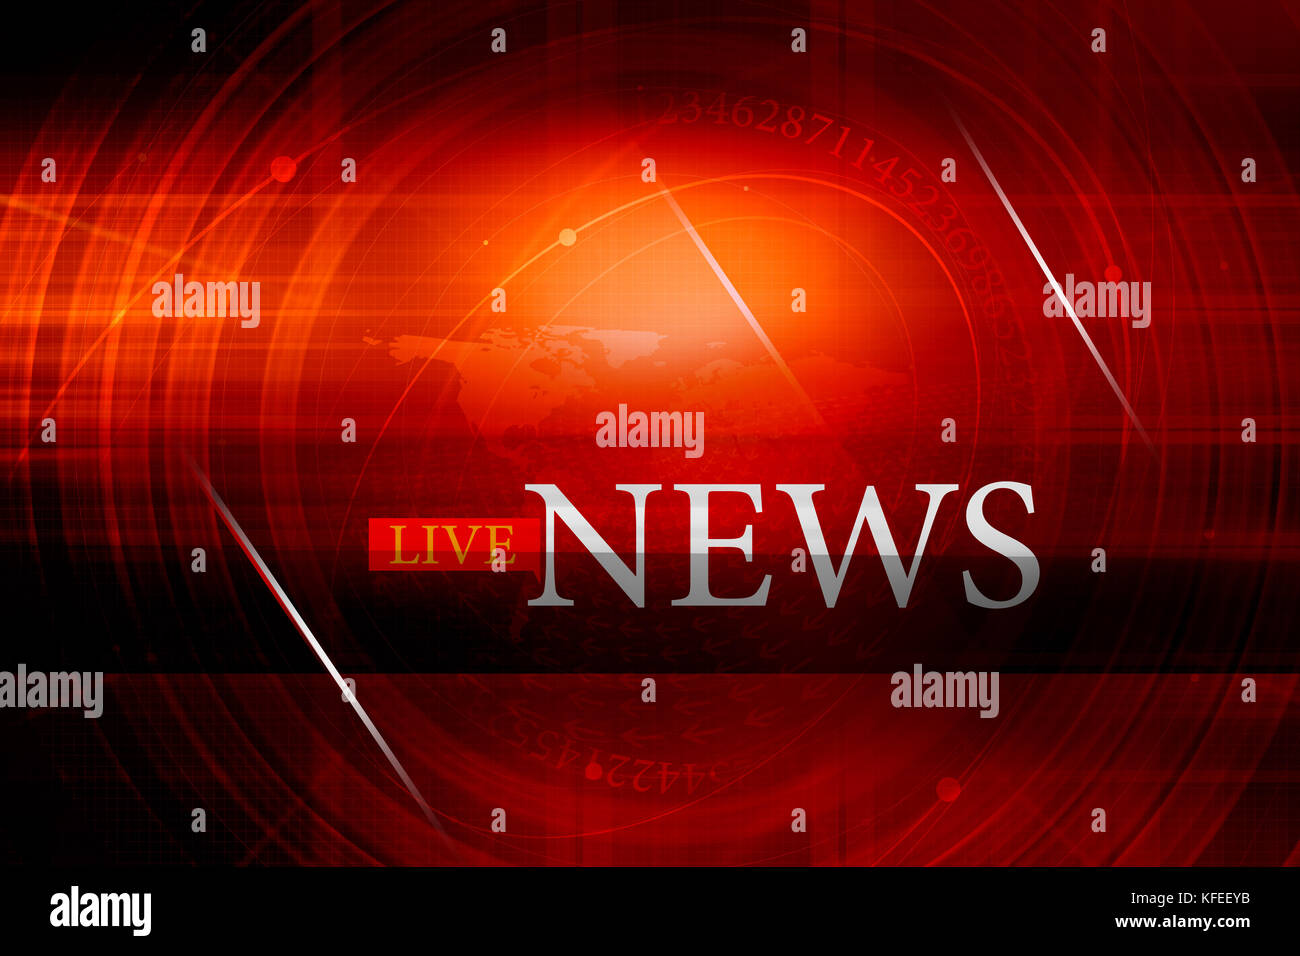 Live news text with world map background expanding or publishing live news text with world map background expanding or publishing news concept gumiabroncs Image collections